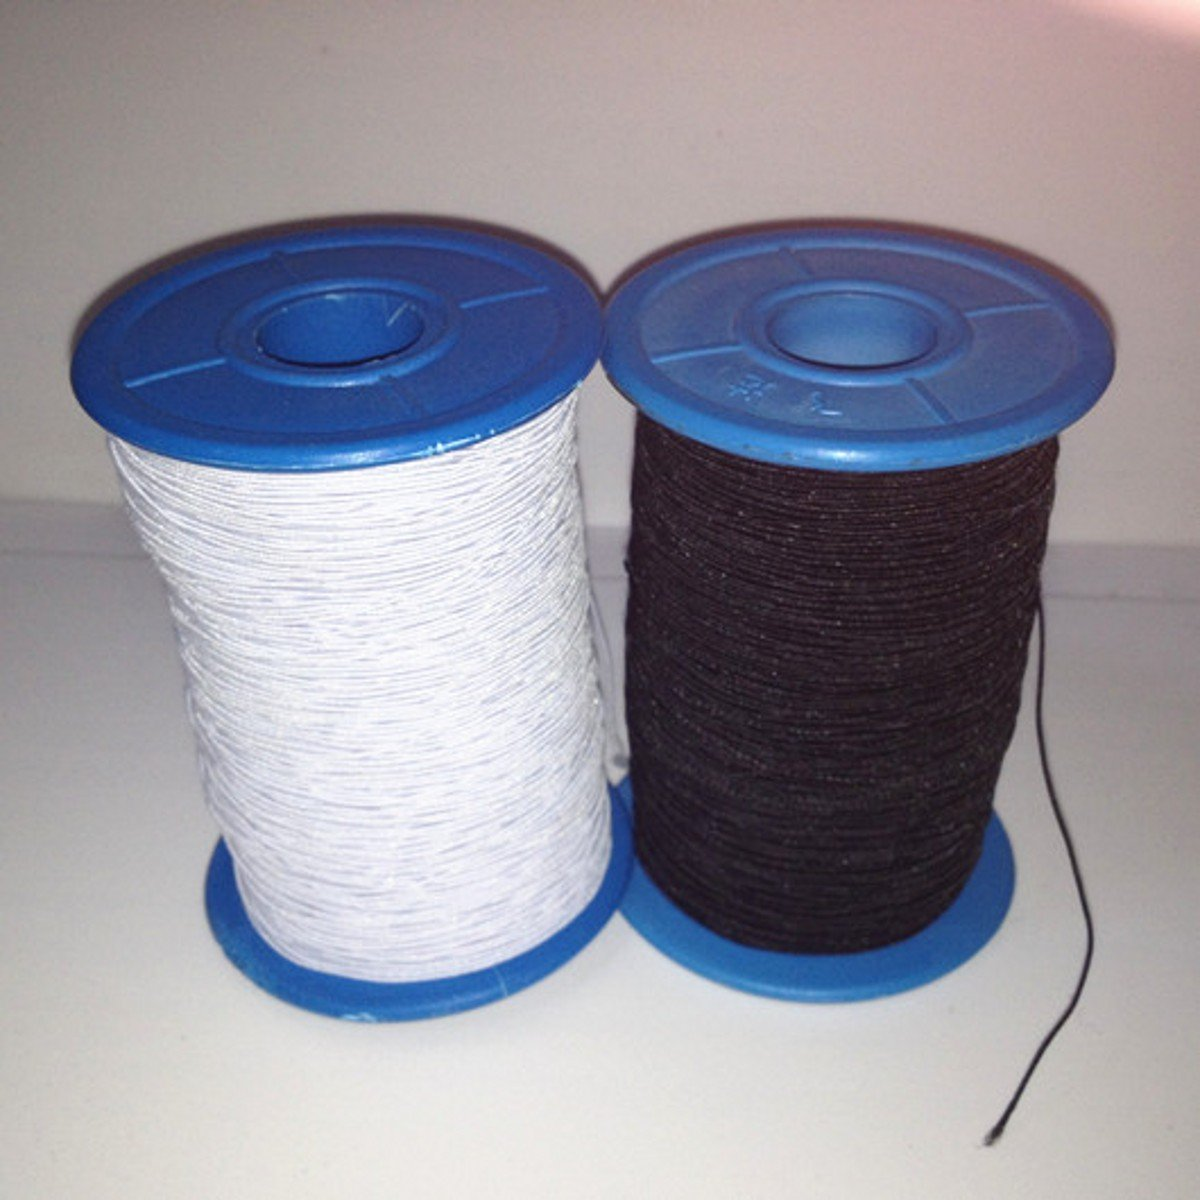 WellieSTR (2 Rolls) White AND Black Elastic Thread 547 Yard Package 0.5mm Thickness 4337000372